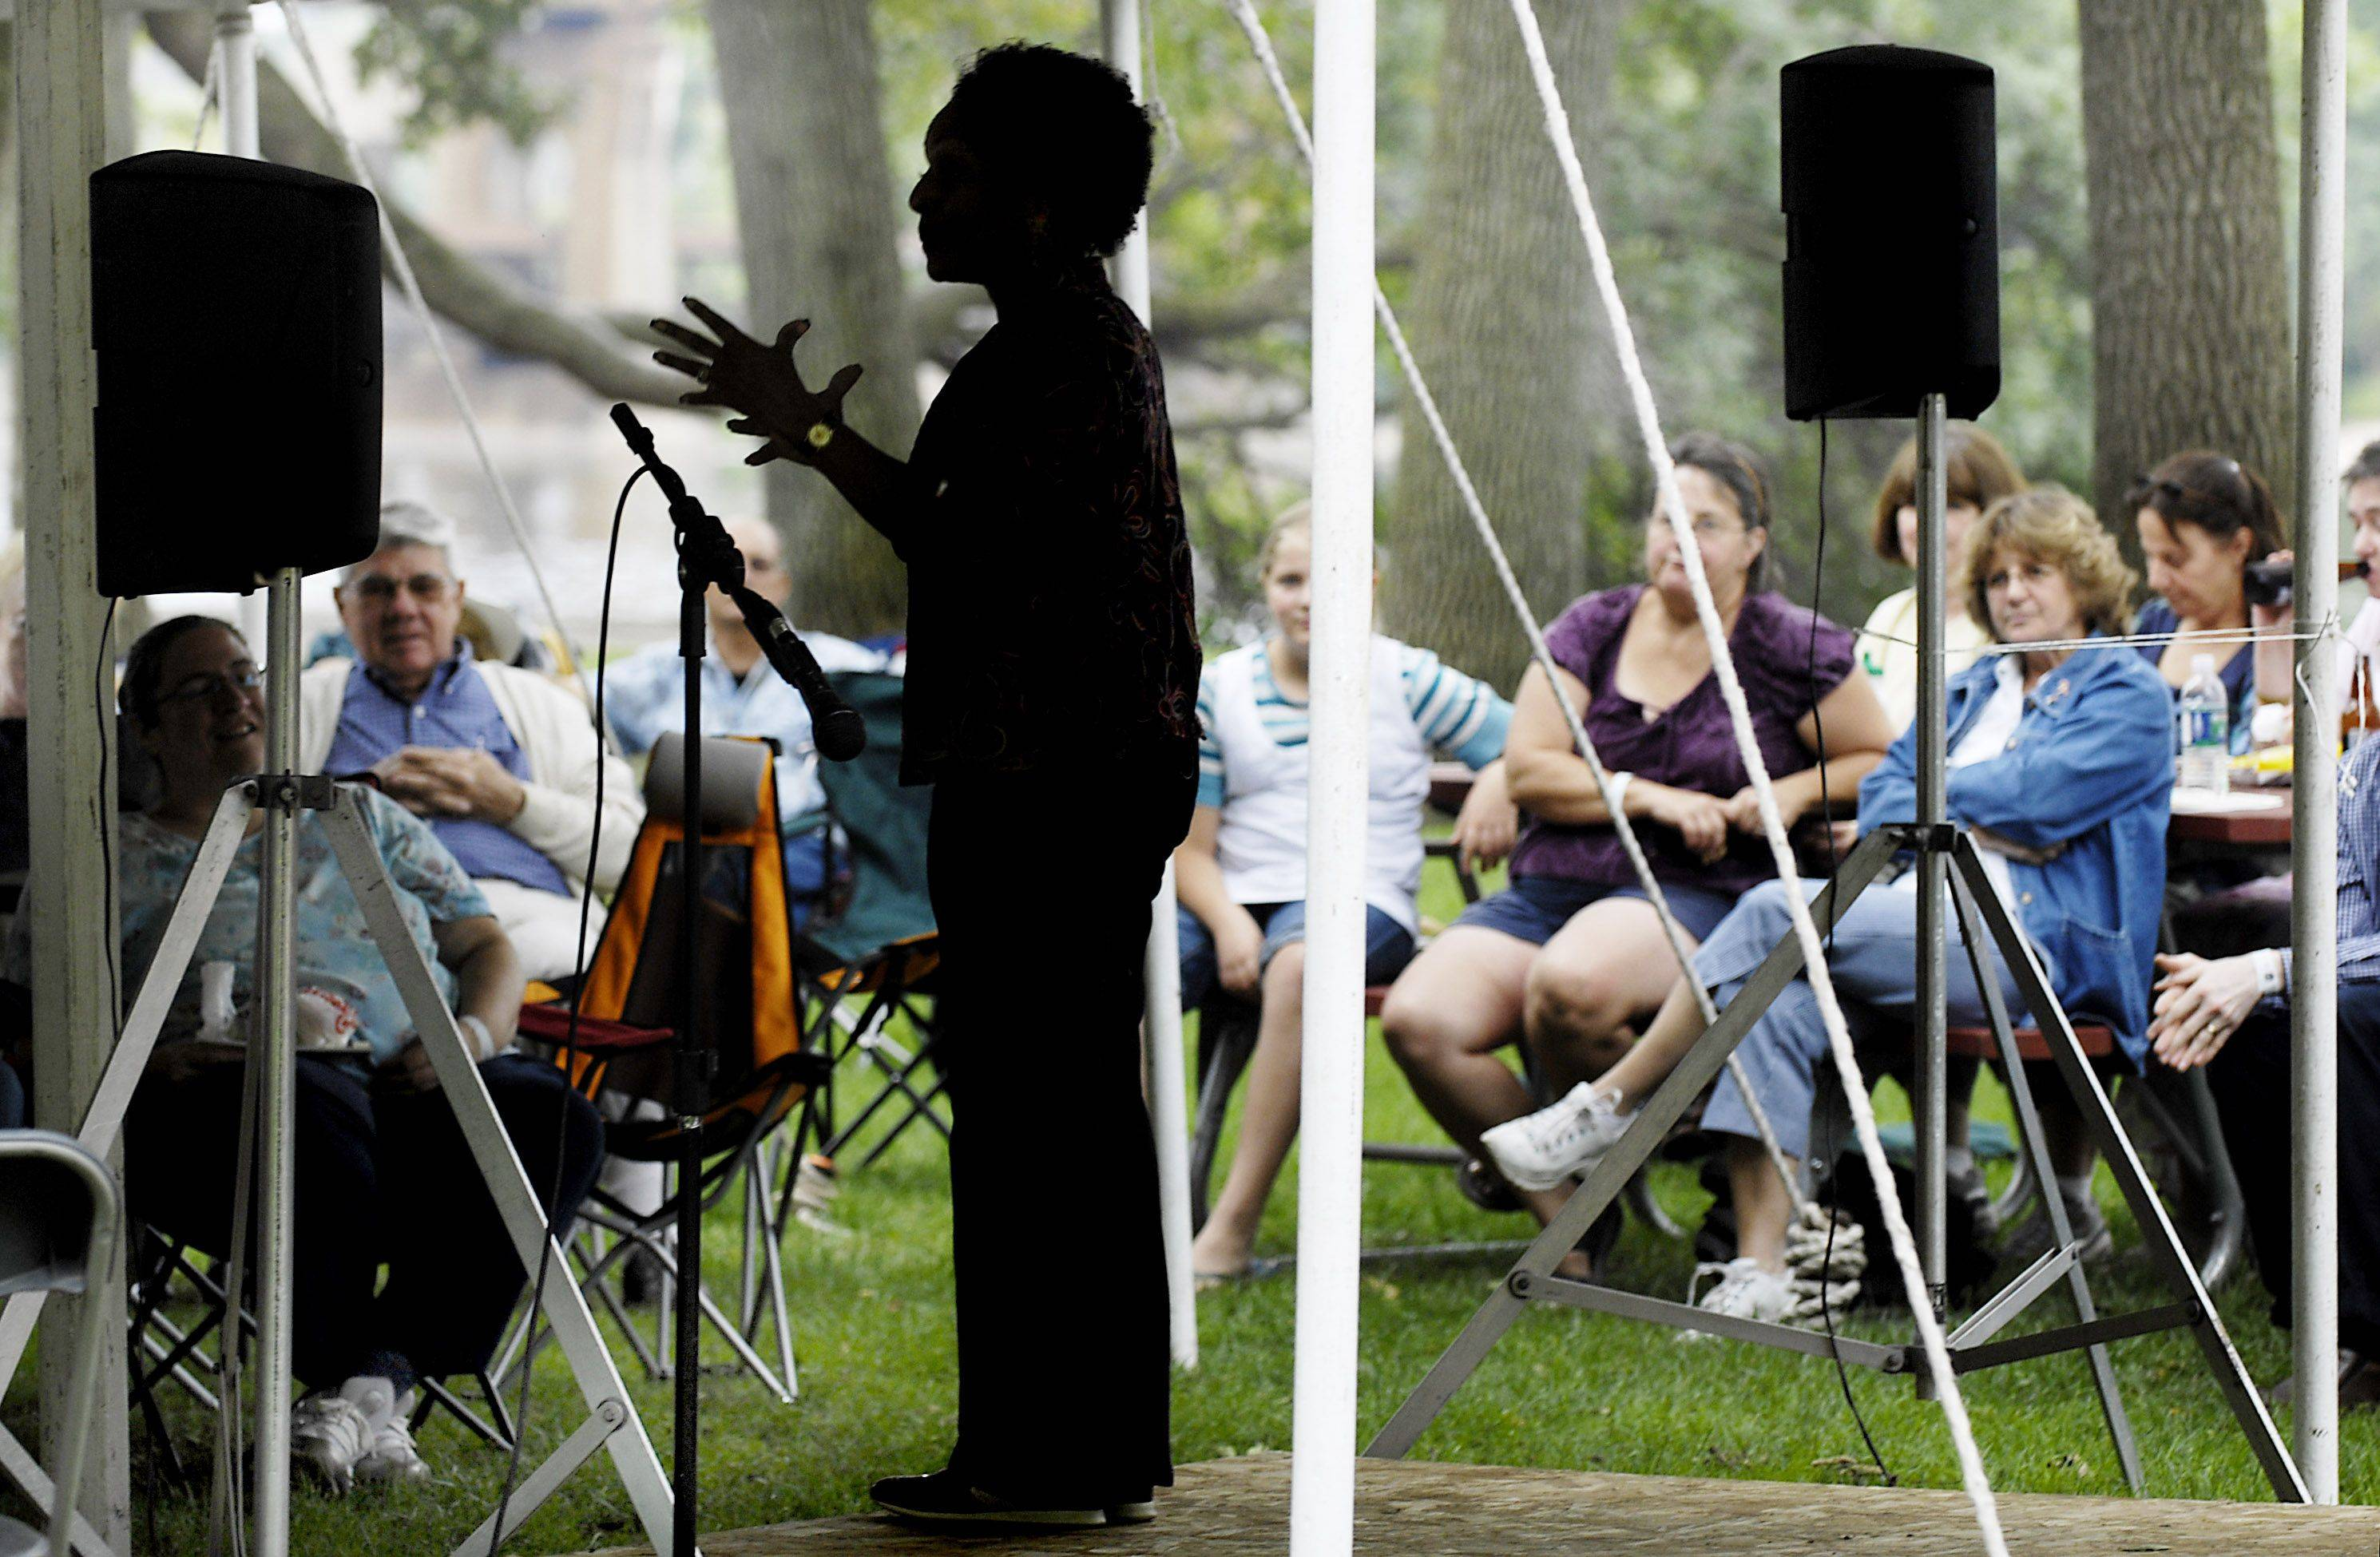 Storyteller Linda Gorham entertains a relaxed crowd at last year's Fox Valley Folk Music and Storytelling Festival in Island Park in Geneva.